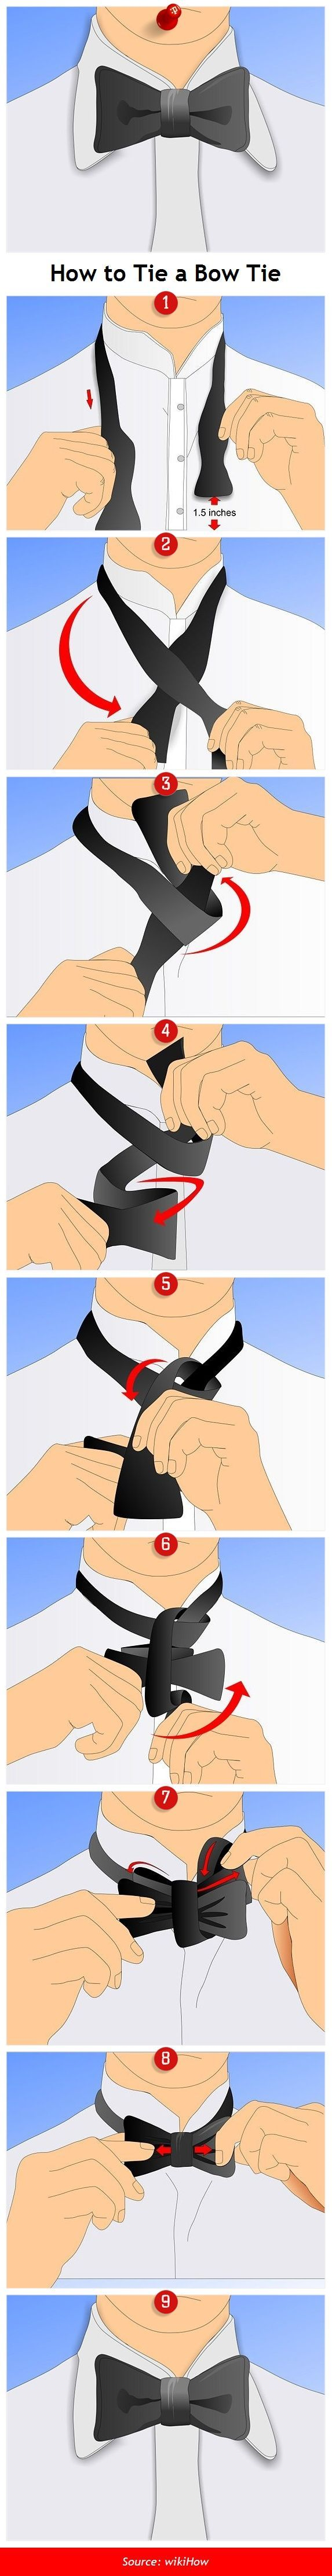 How to Tie a Bow Tie. Necessary sartorial information for the Man In The Know on U.C.'s campus.